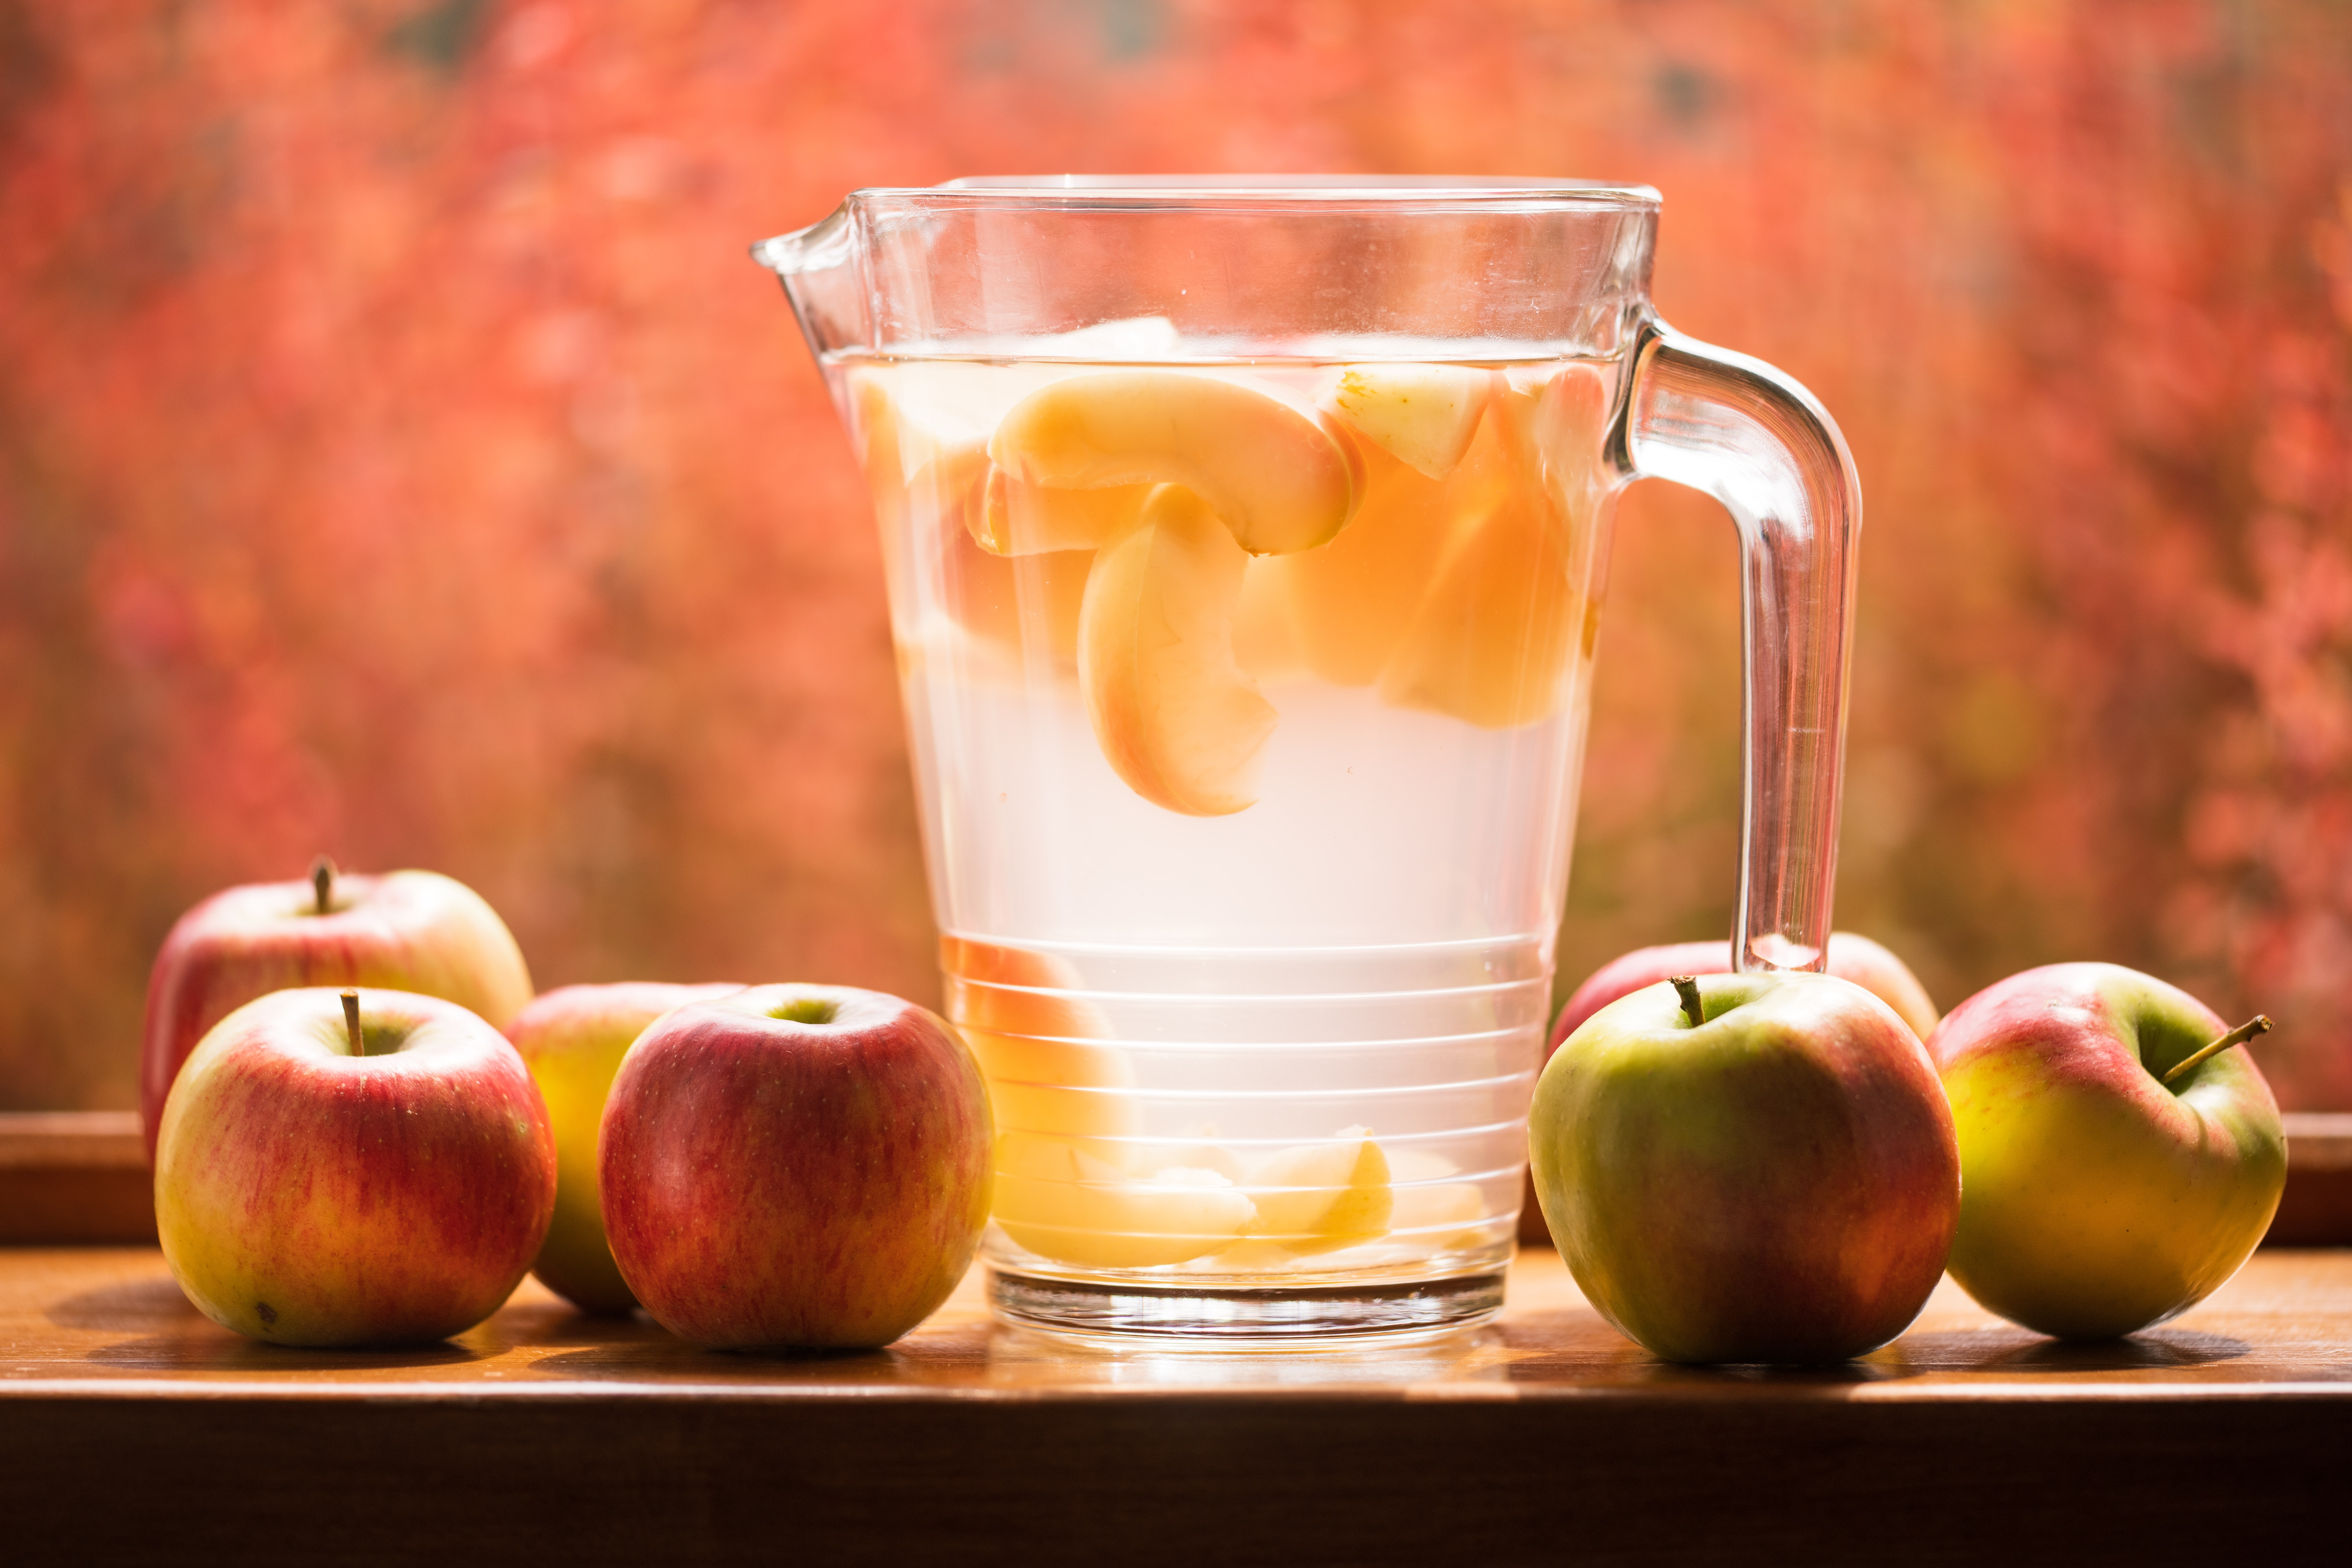 glass pitcher and apples on table